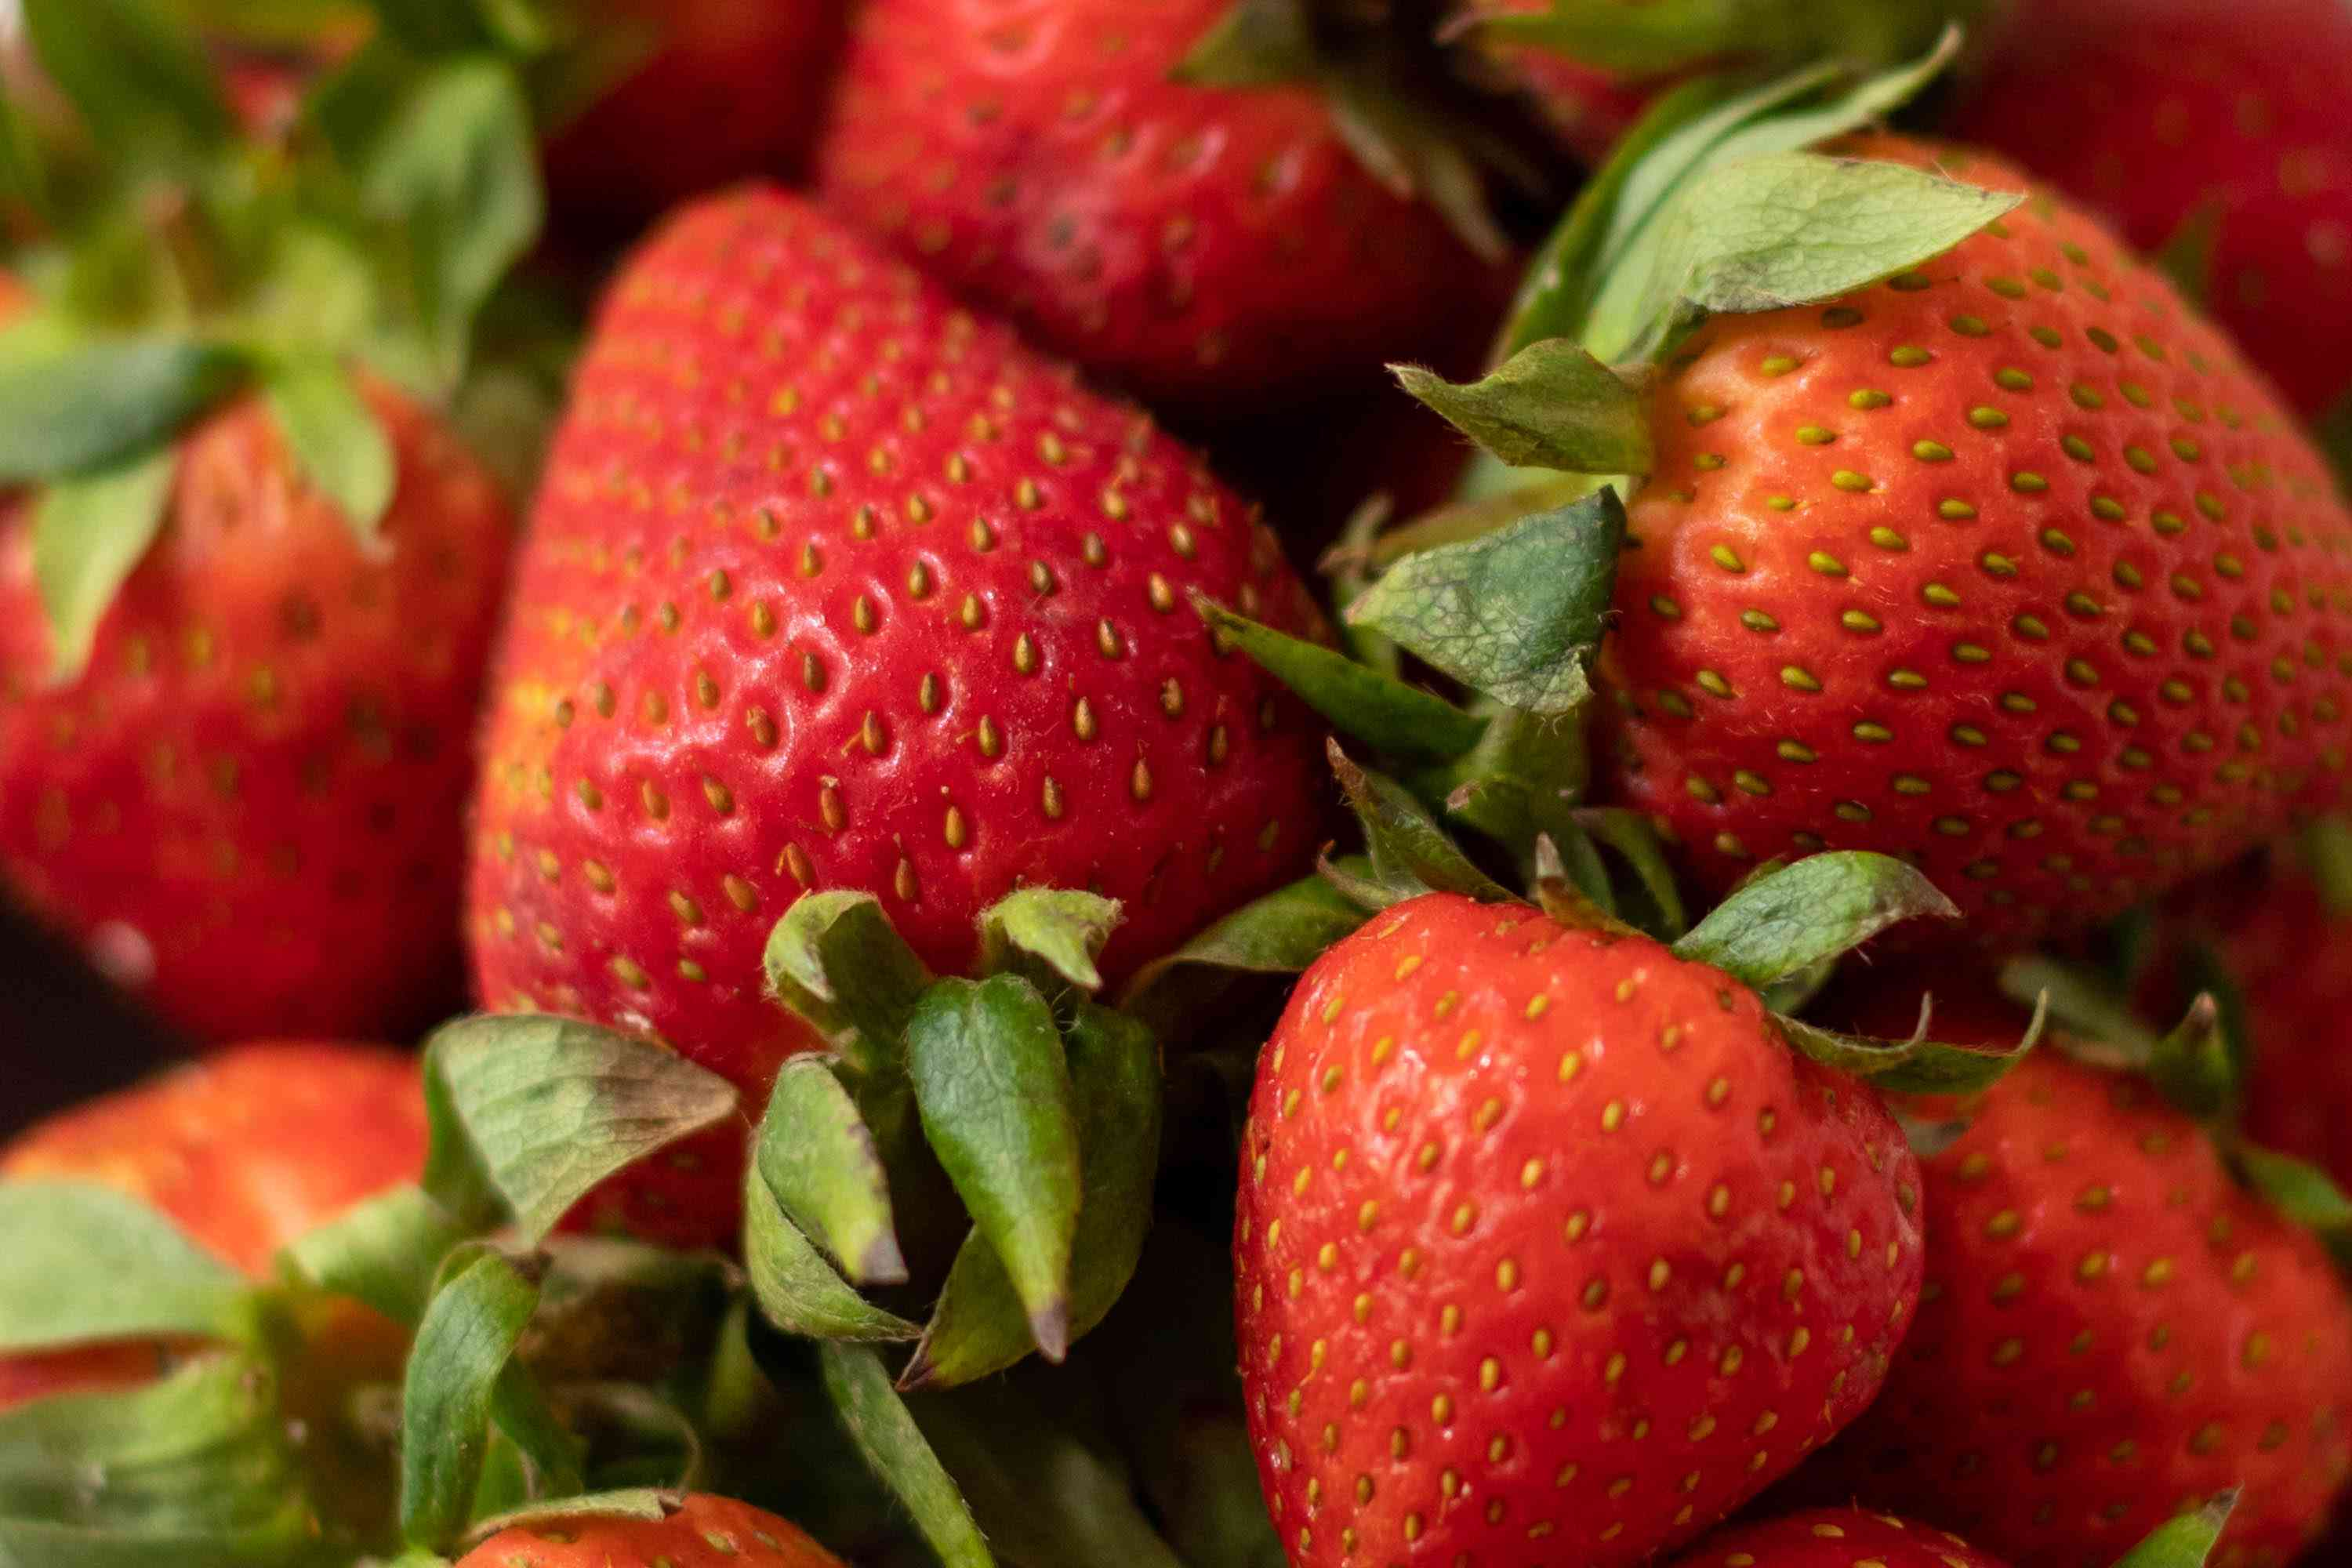 Bright yellow-green seeds covering red strawberry fruit